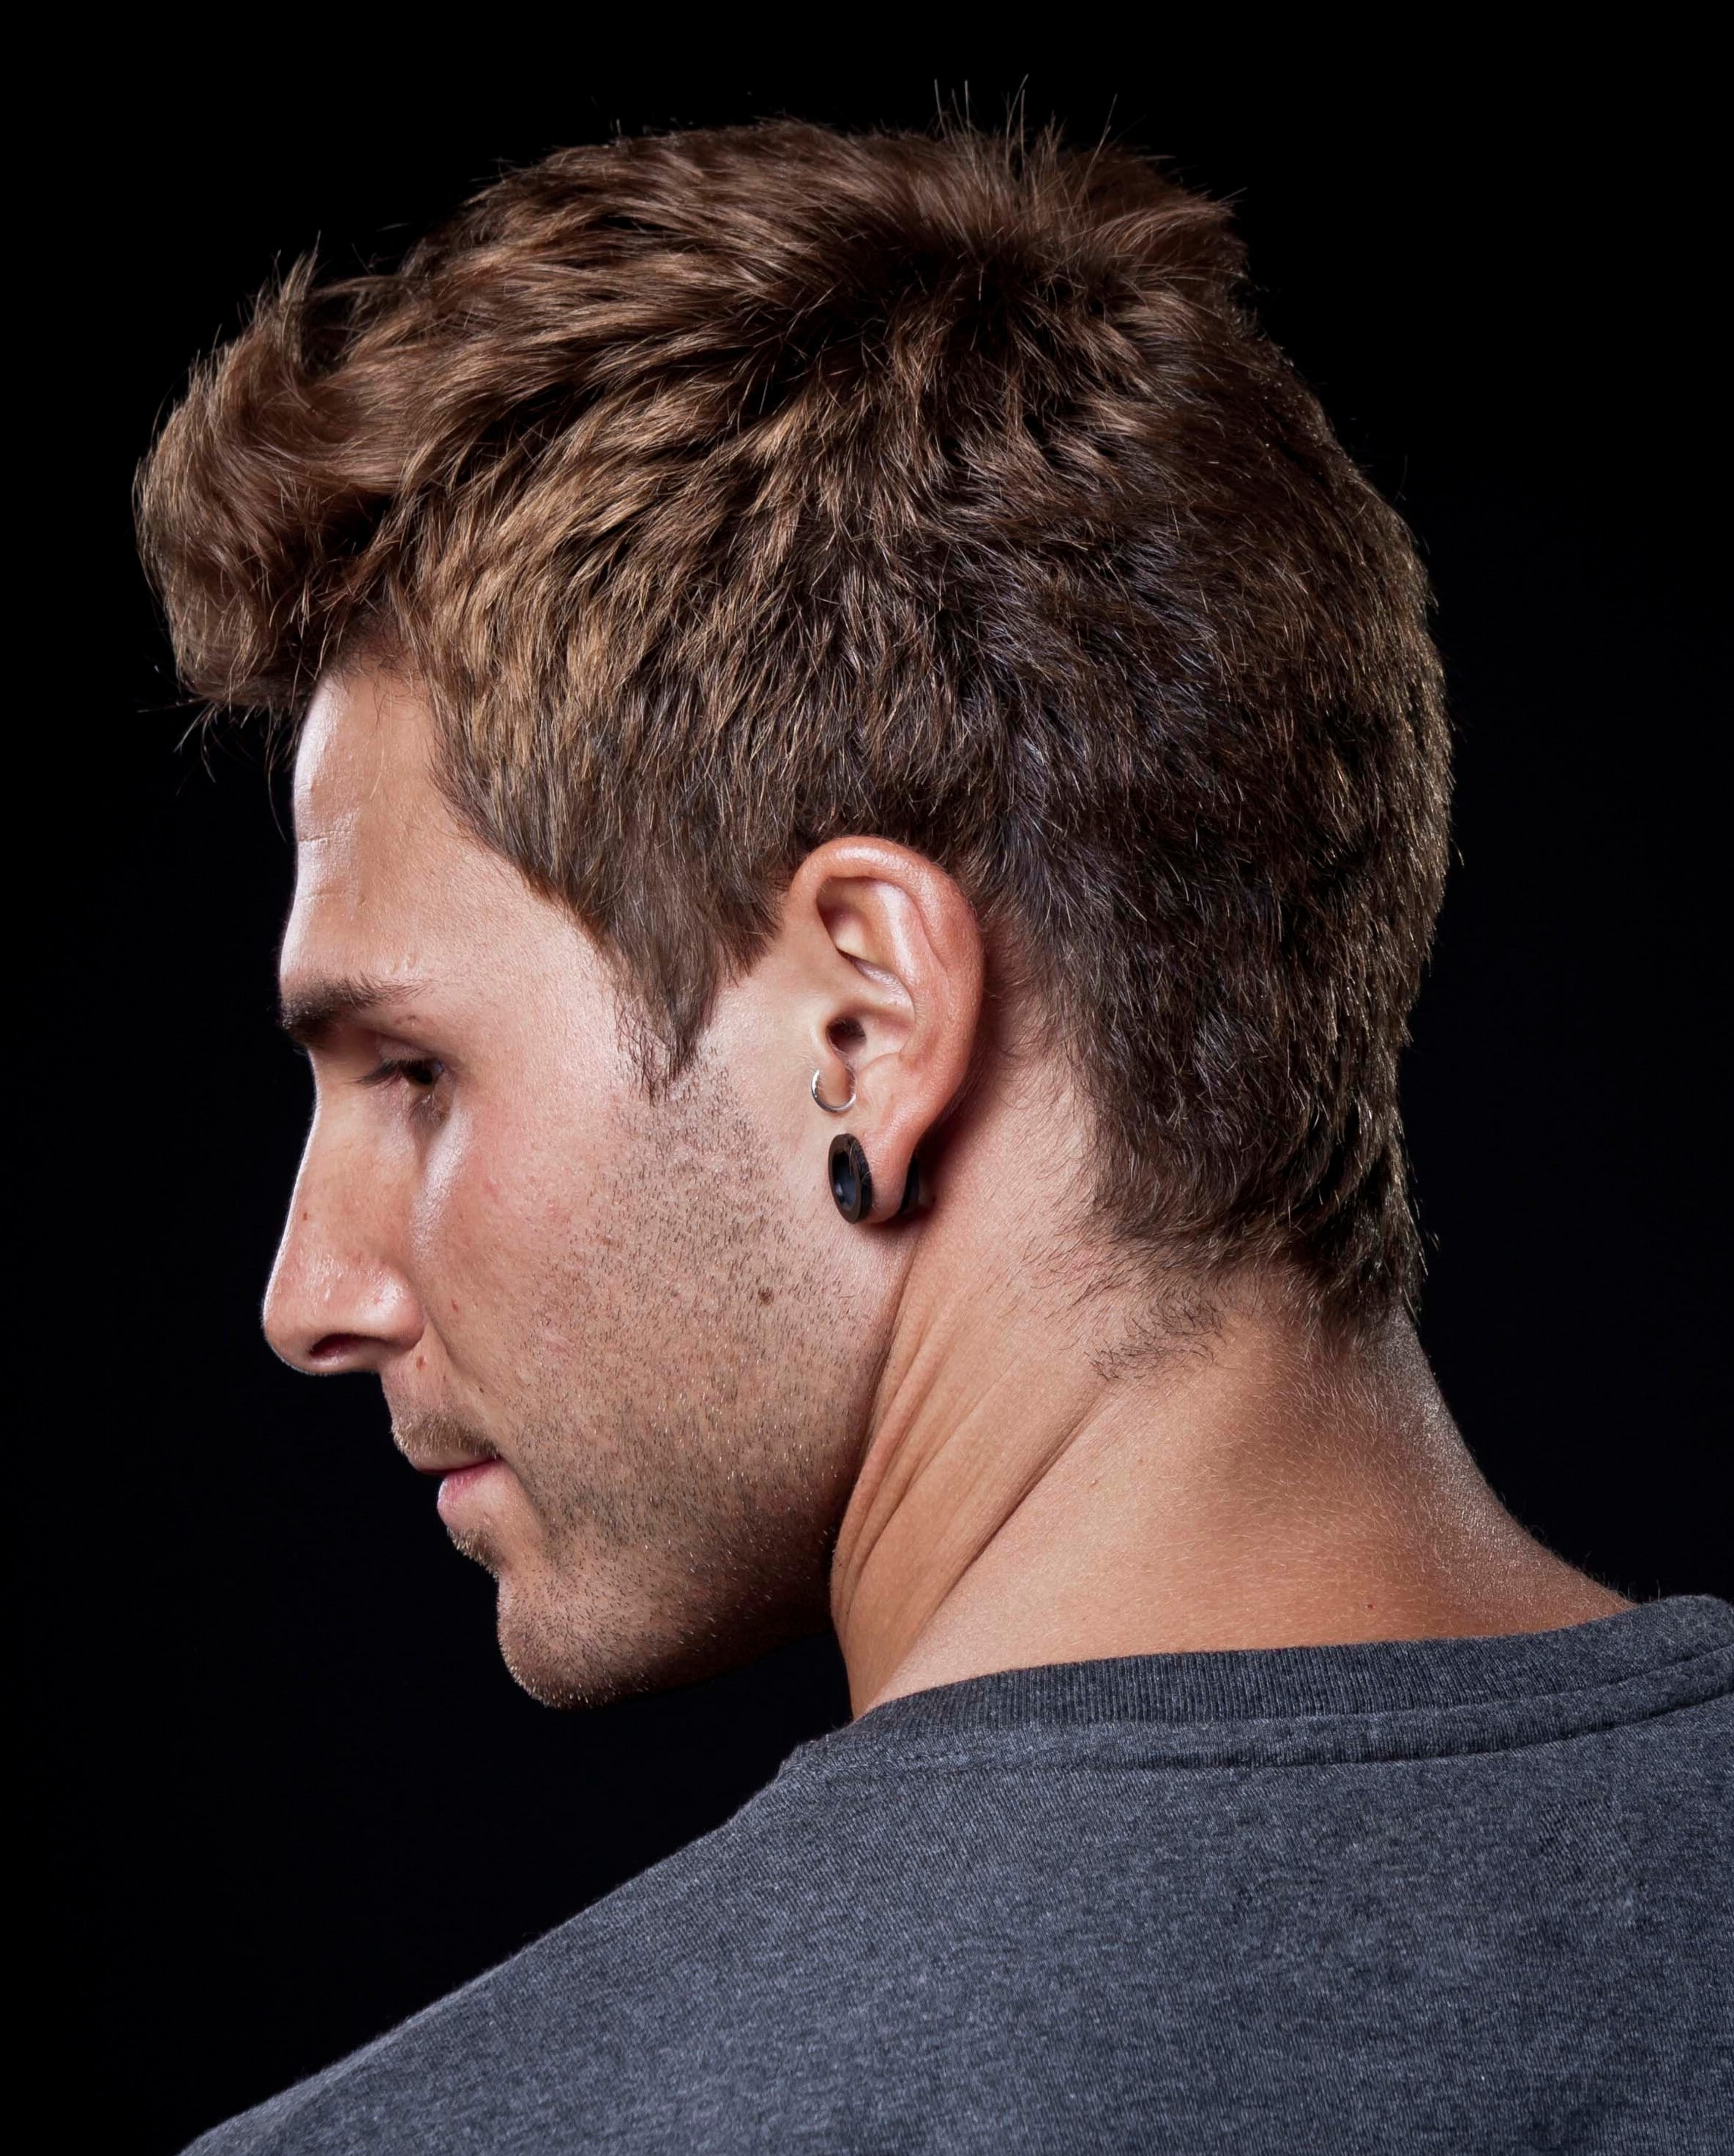 Mohawk Hairstyle For Men: 17 Cool Styles To Inspire Your Next Look In Most Recent Barely There Mohawk Hairstyles (View 12 of 20)